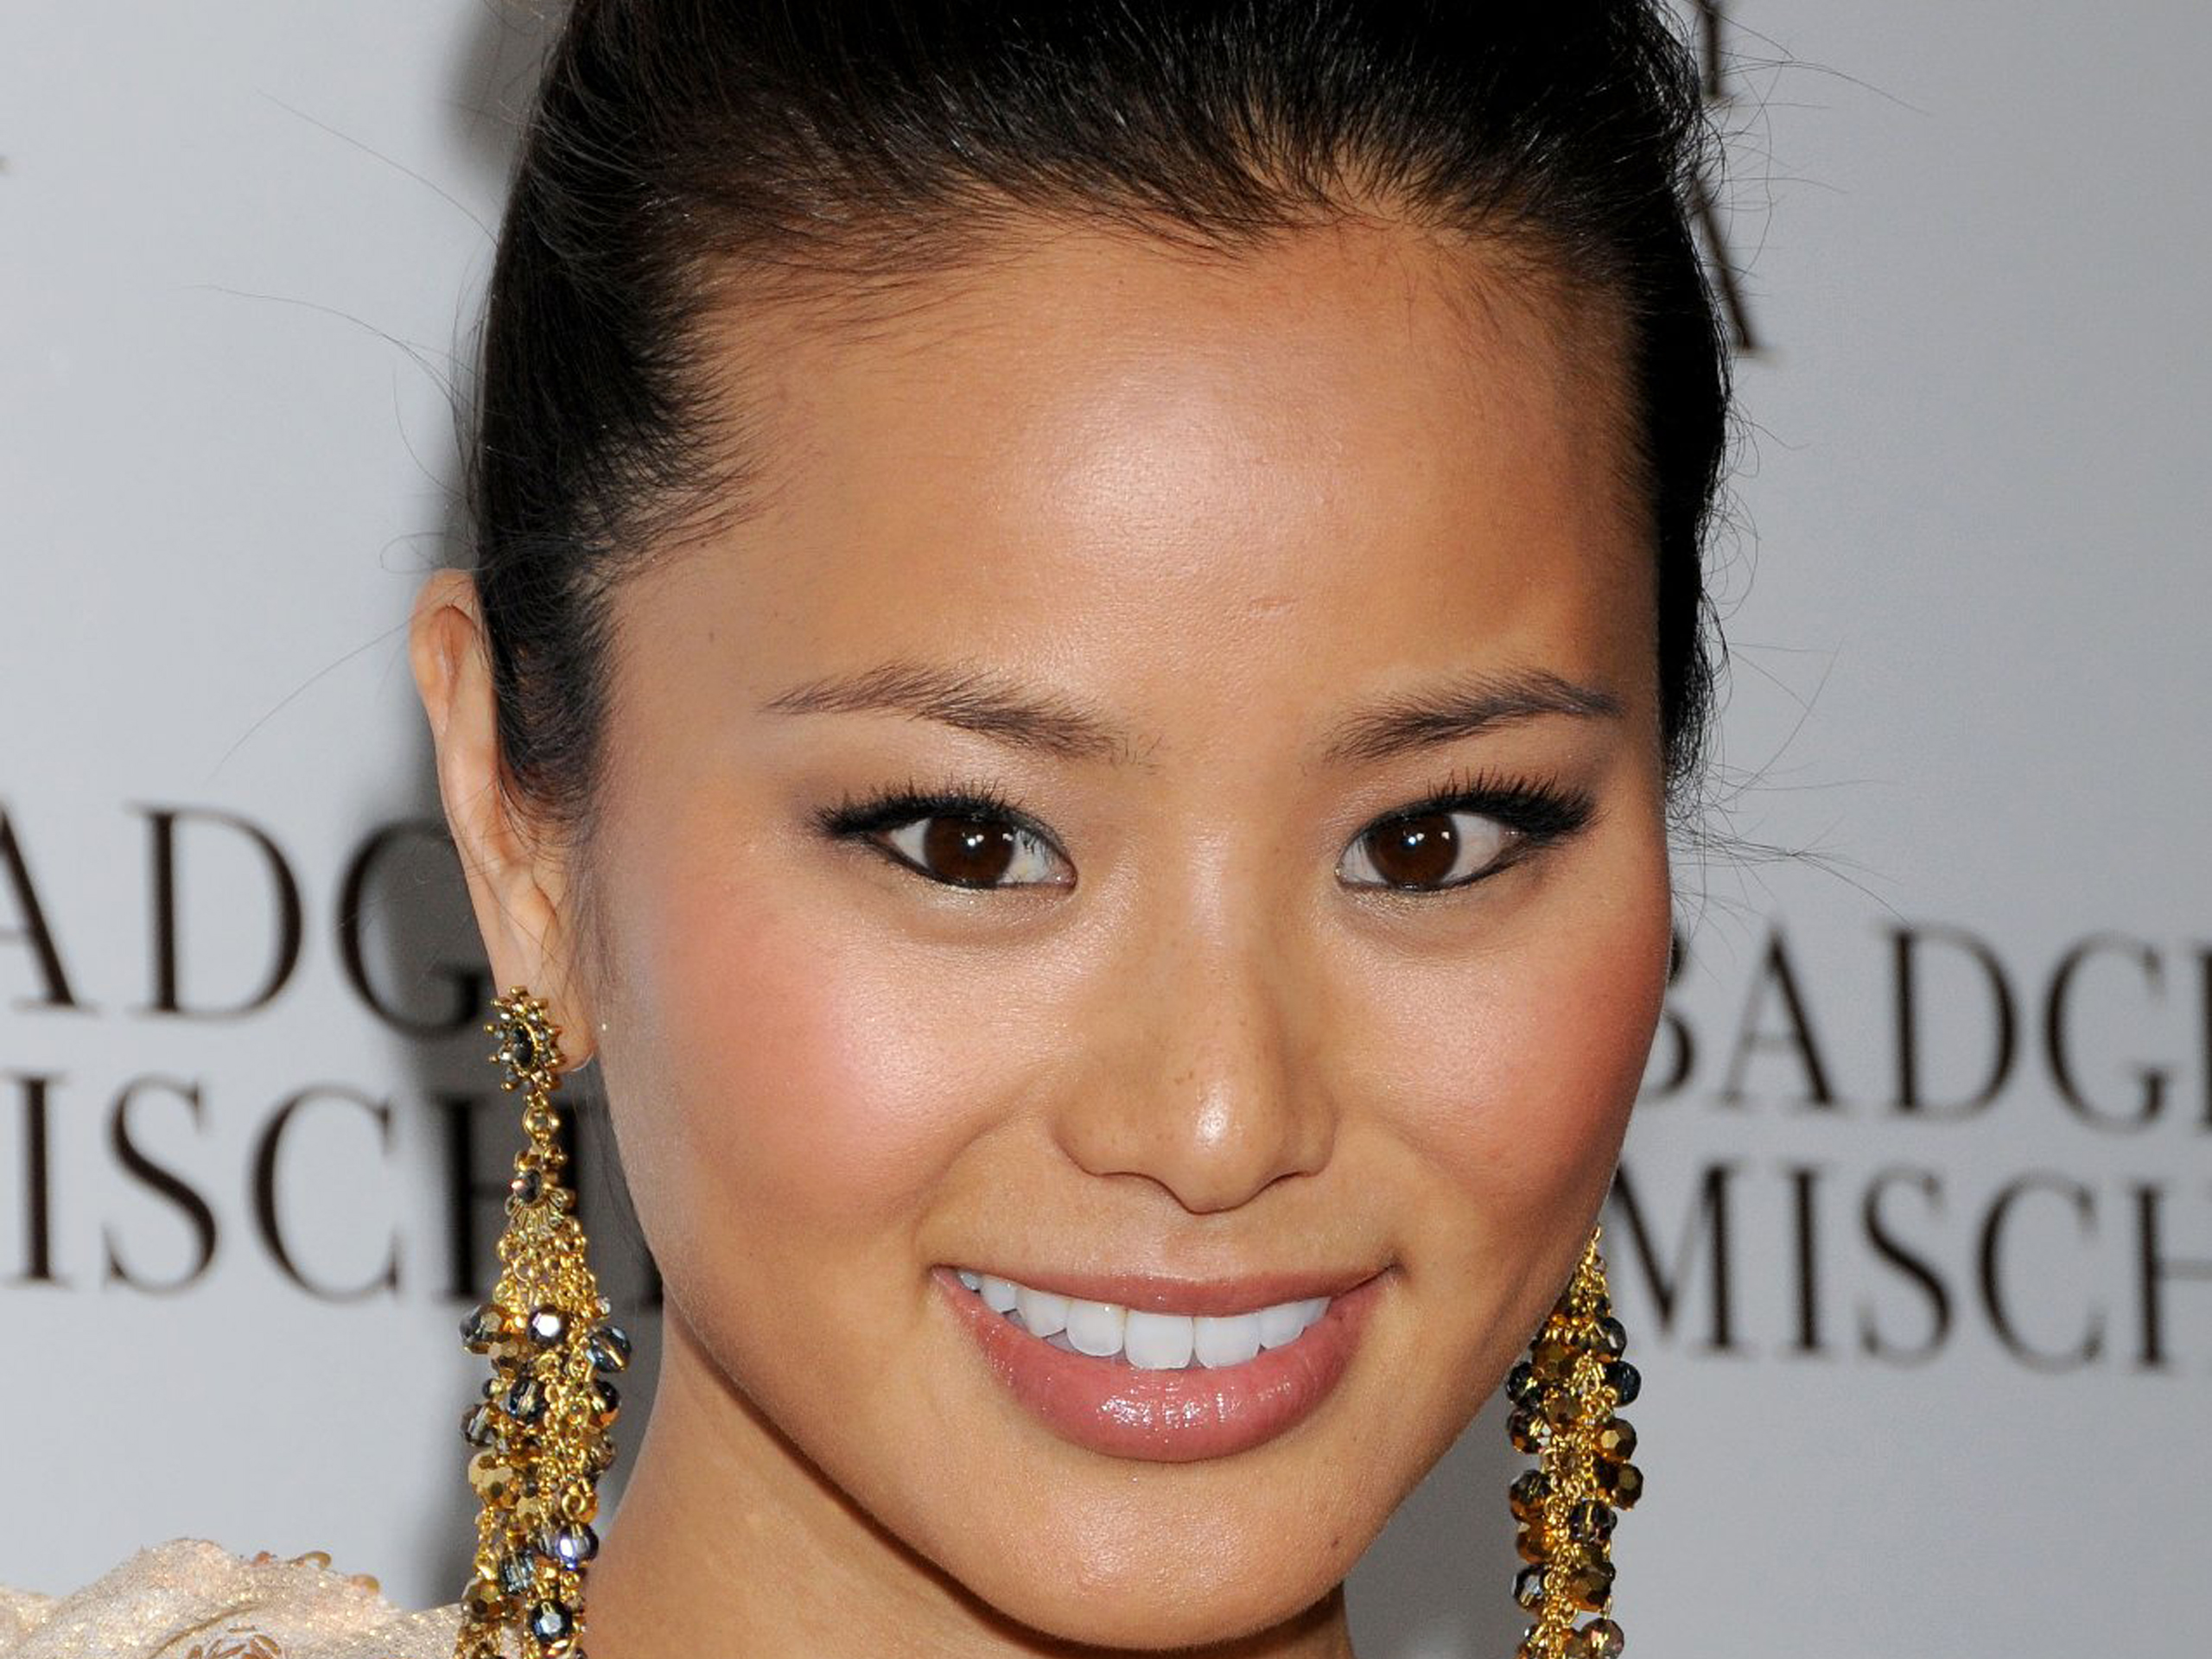 jamie chung face wallpaper 53578 2560x1920 px